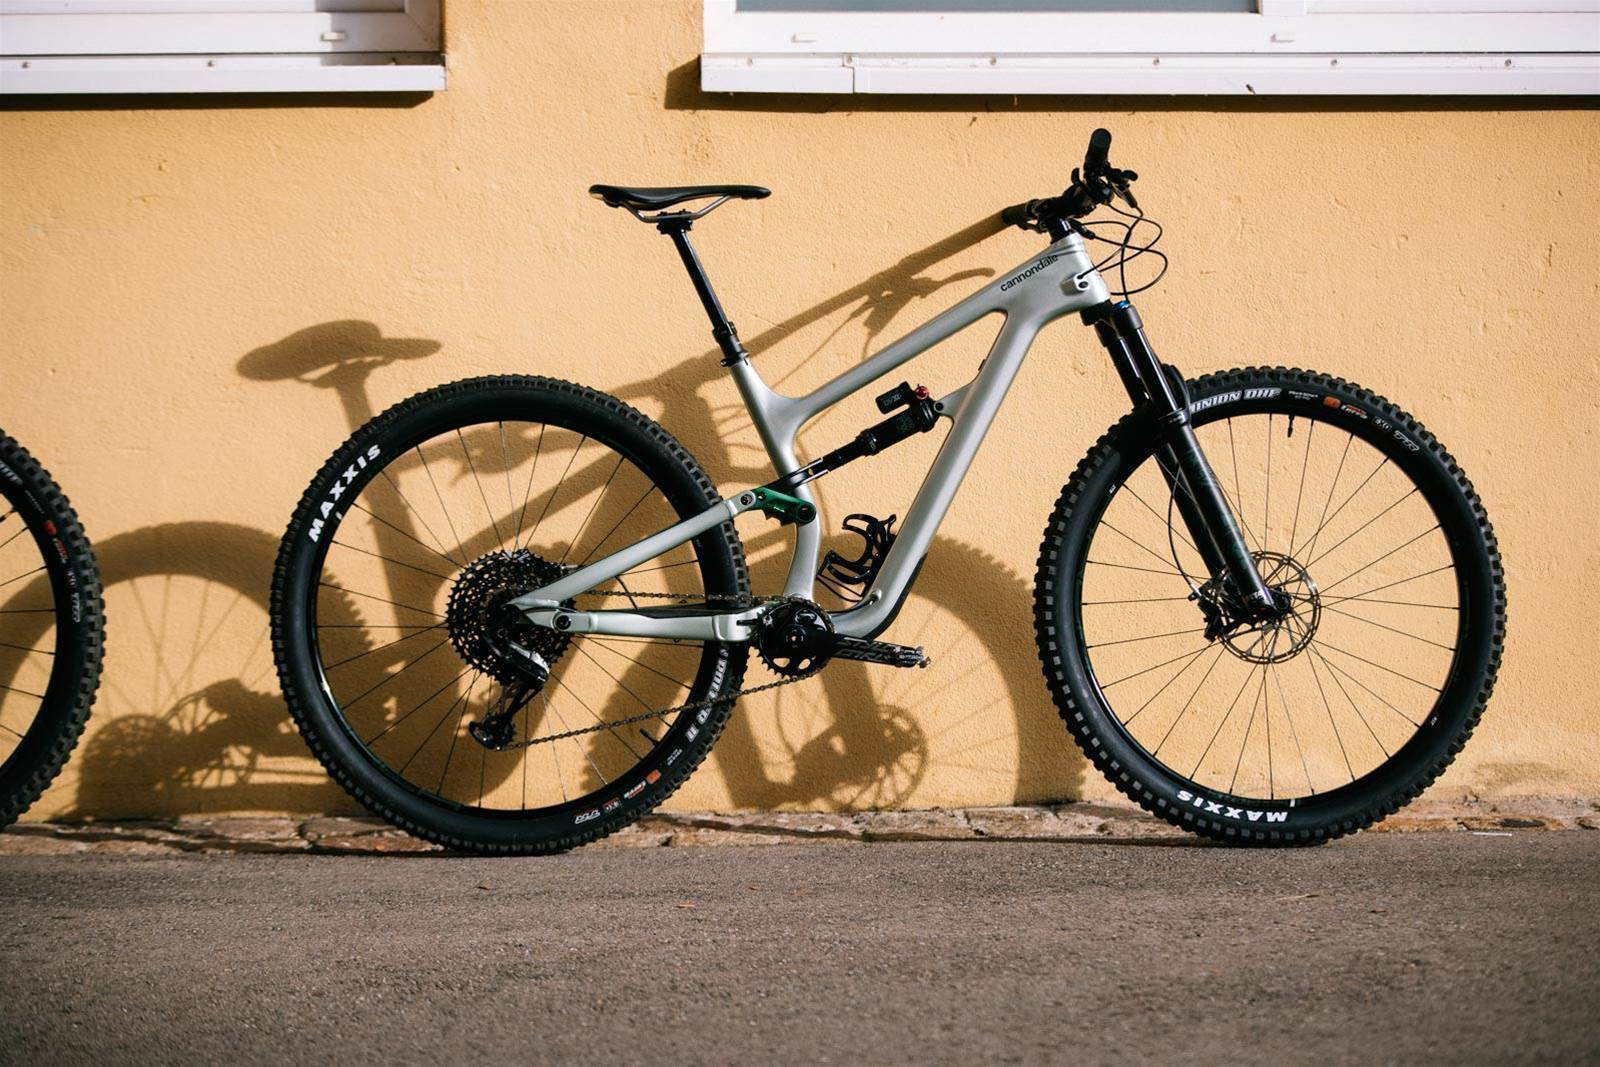 The Cannondale Habit reinvents the trail bike